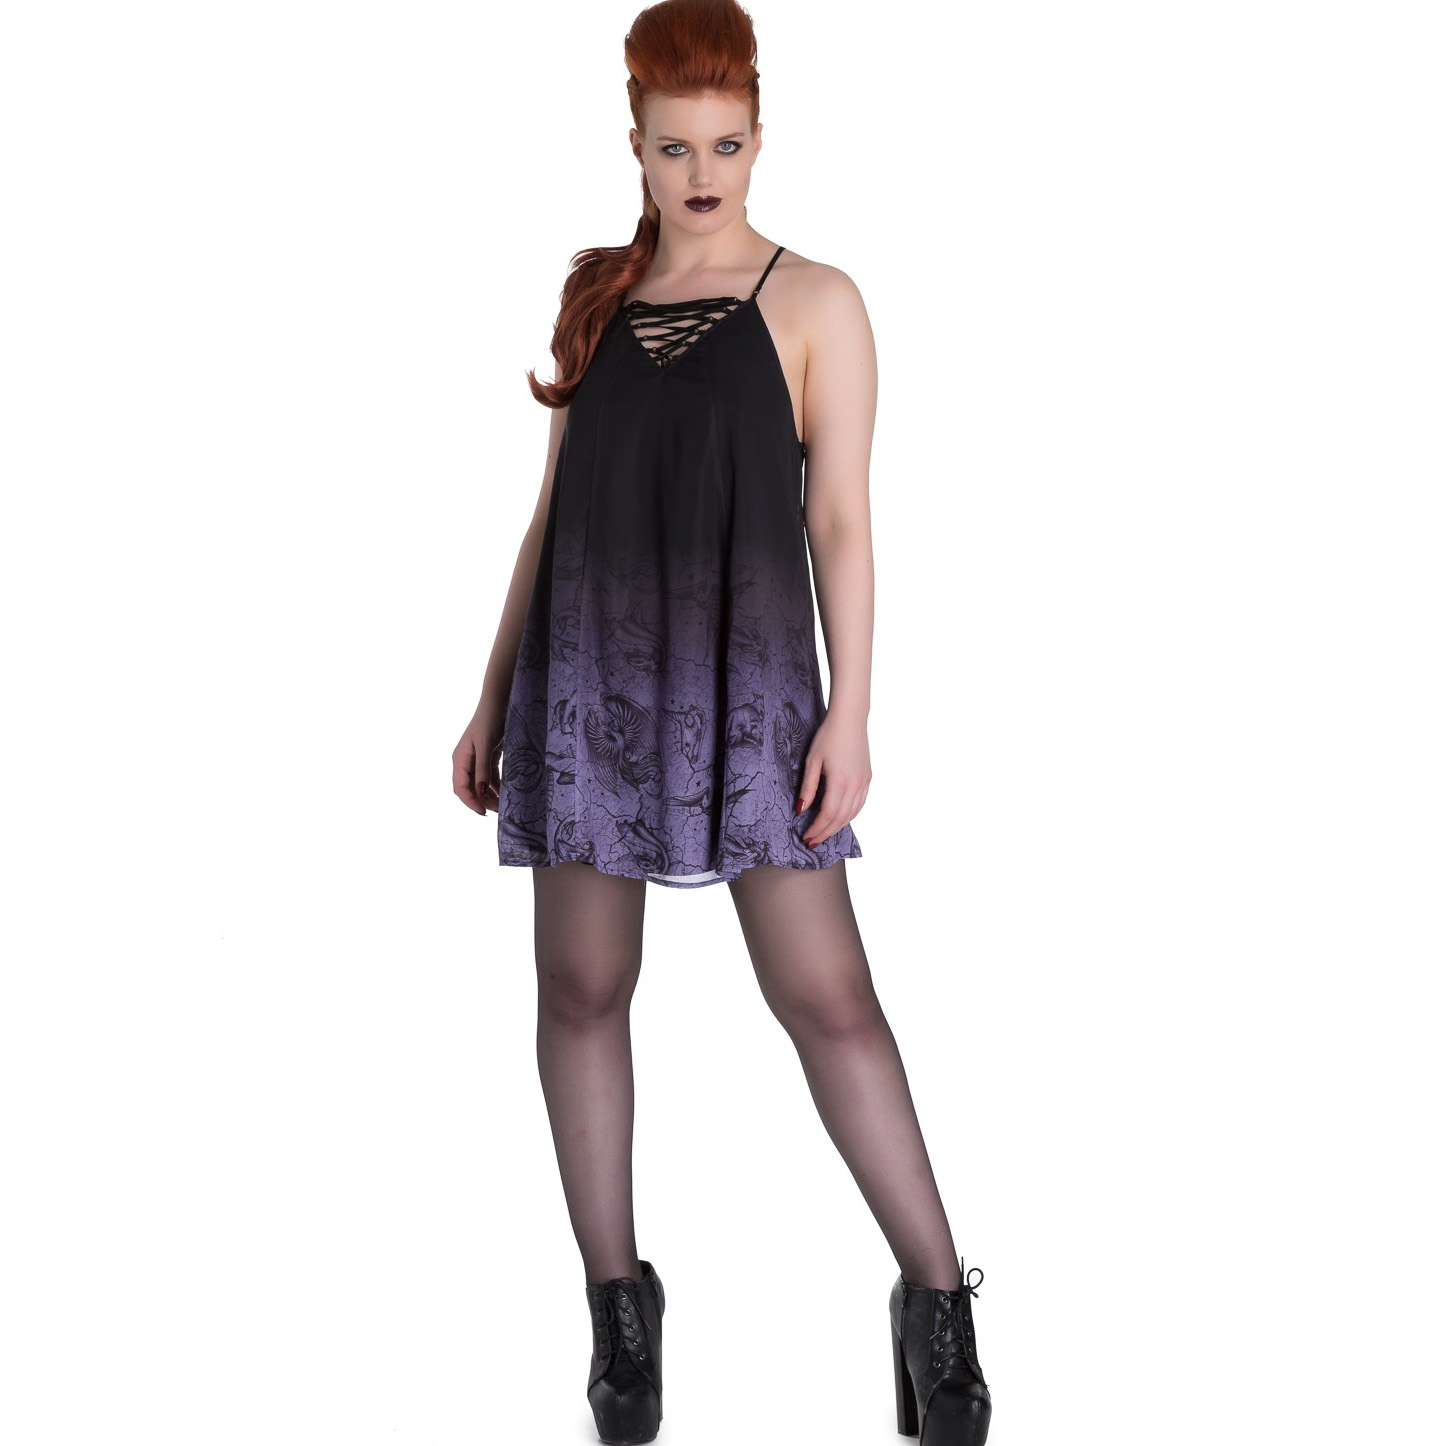 Hell-Bunny-Spin-Doctor-Goth-Lace-Up-Mini-Dress-EVADINE-Purple-Black-All-Sizes thumbnail 7